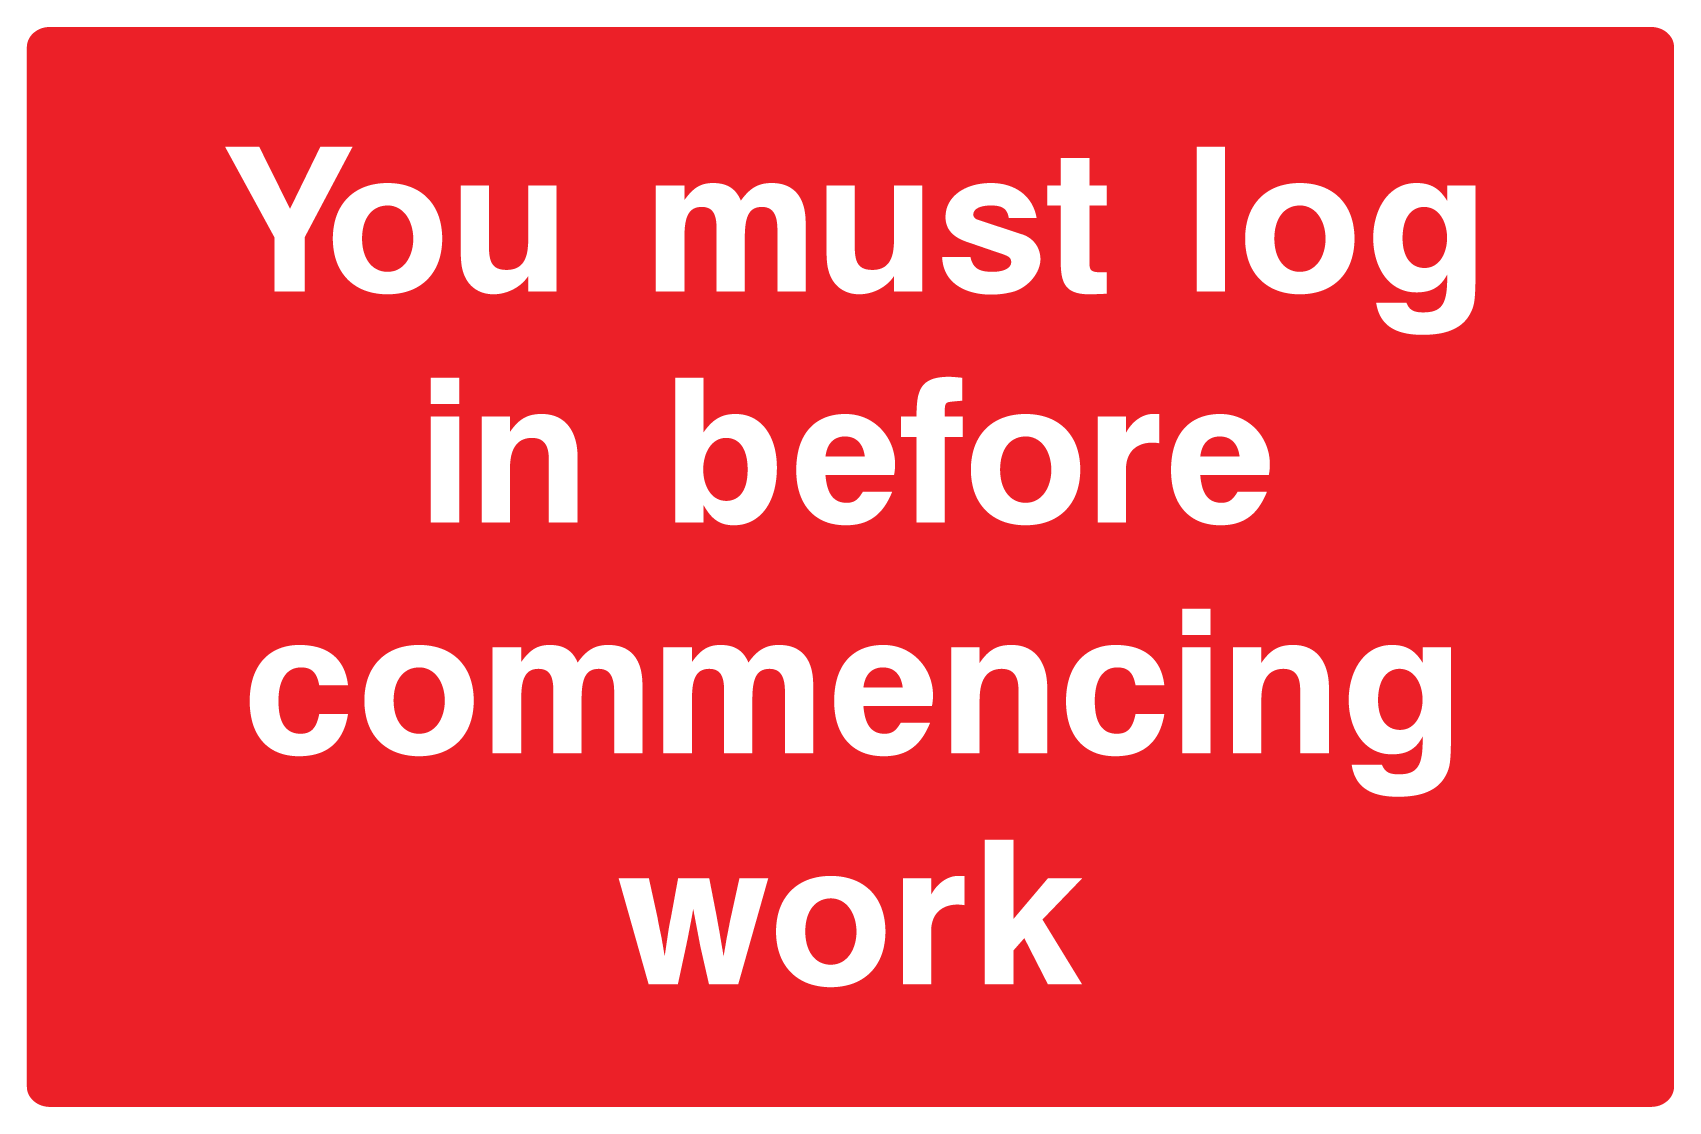 You must Log in before work sign